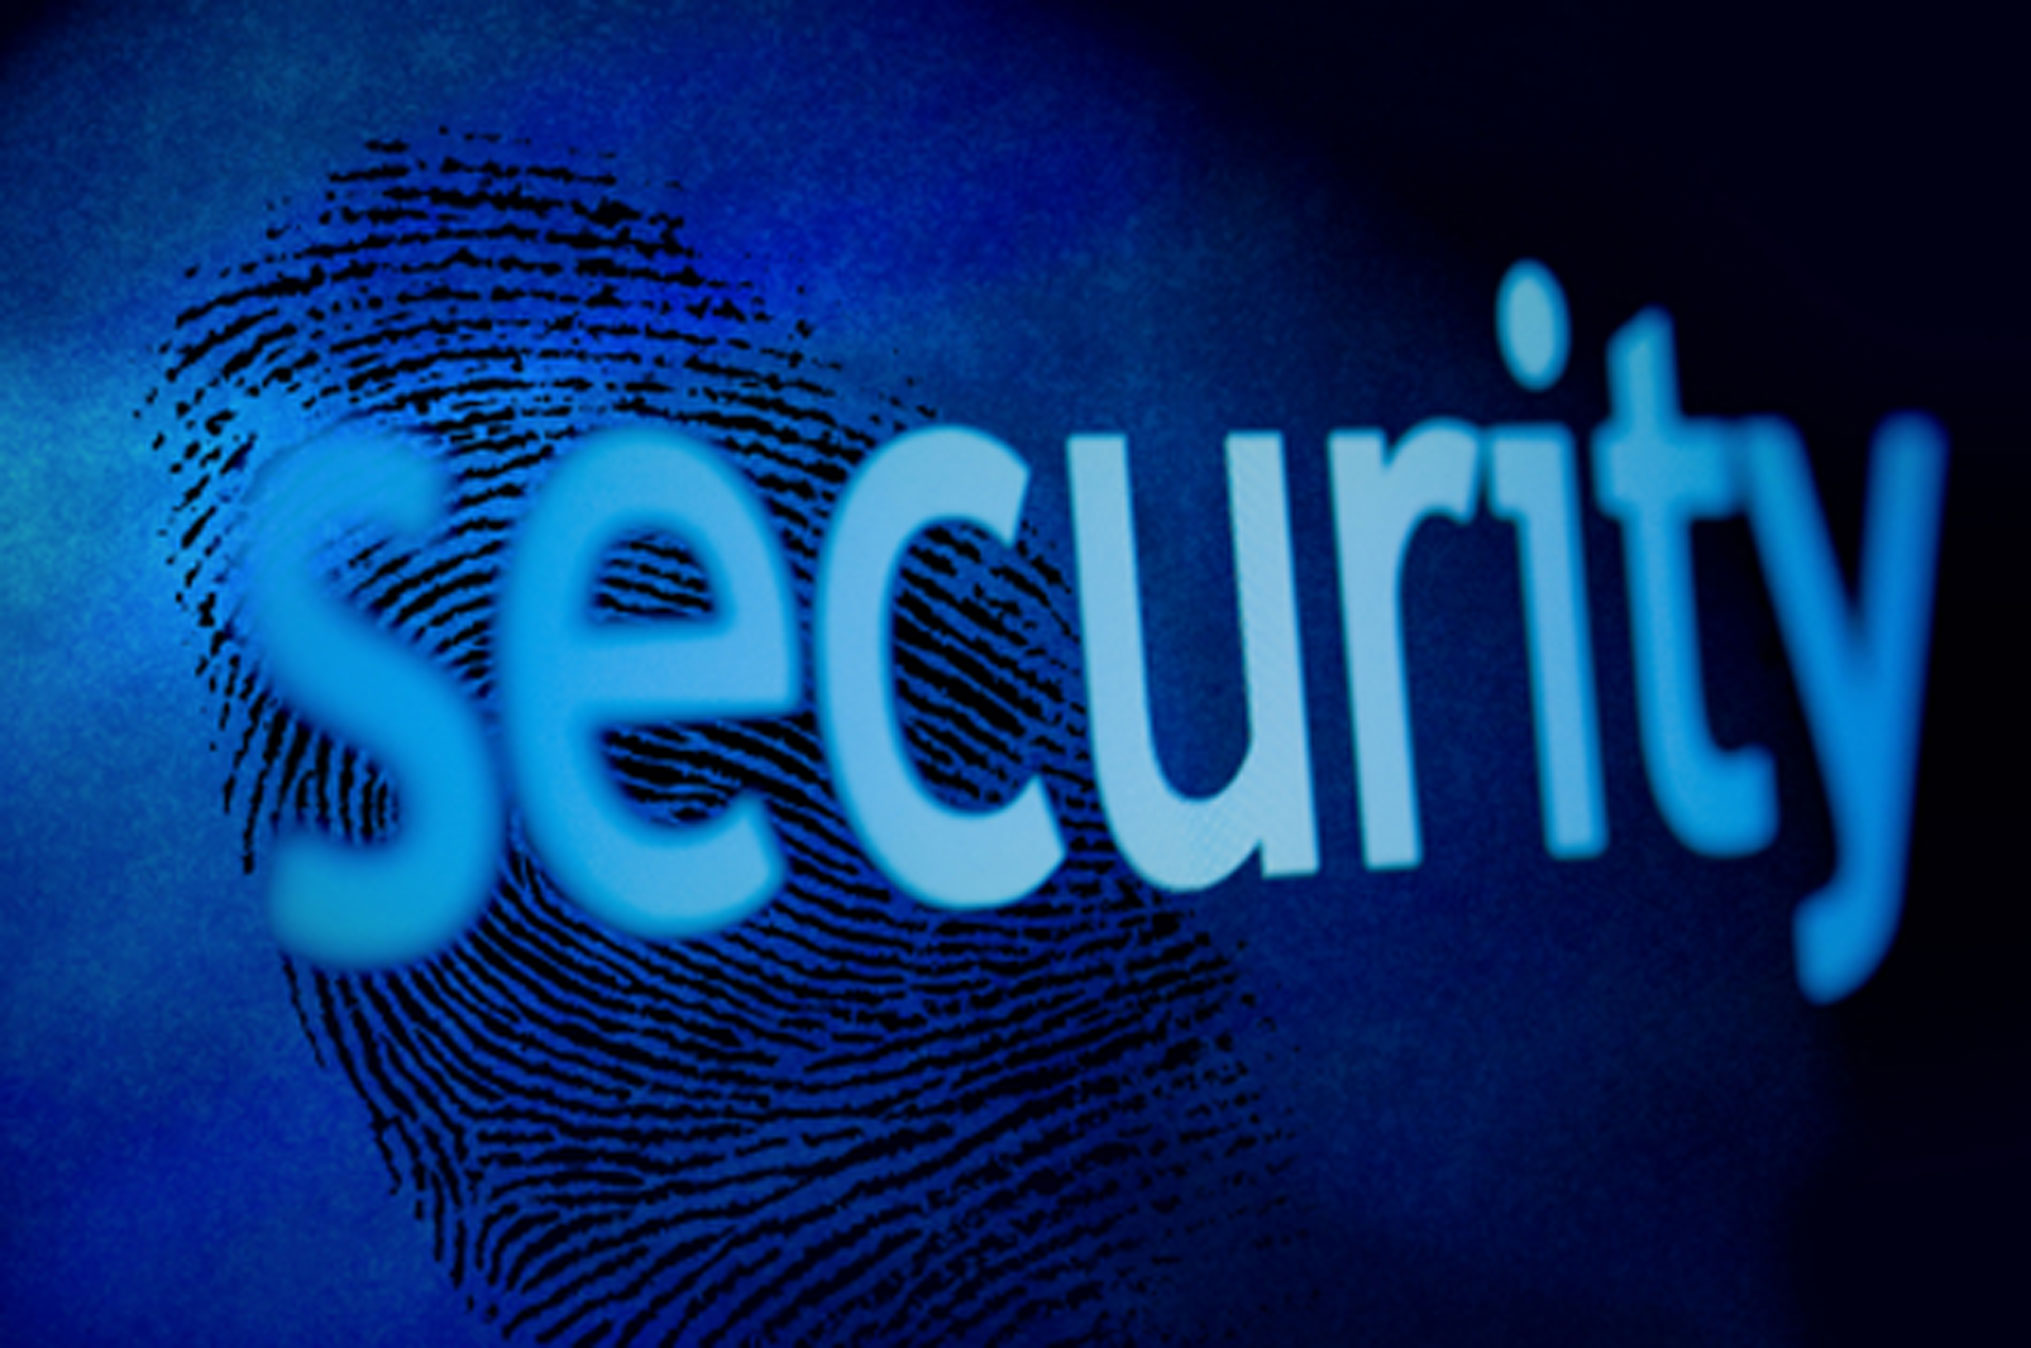 Hire The Best Geelong Security Guards For Managing Crowd Control